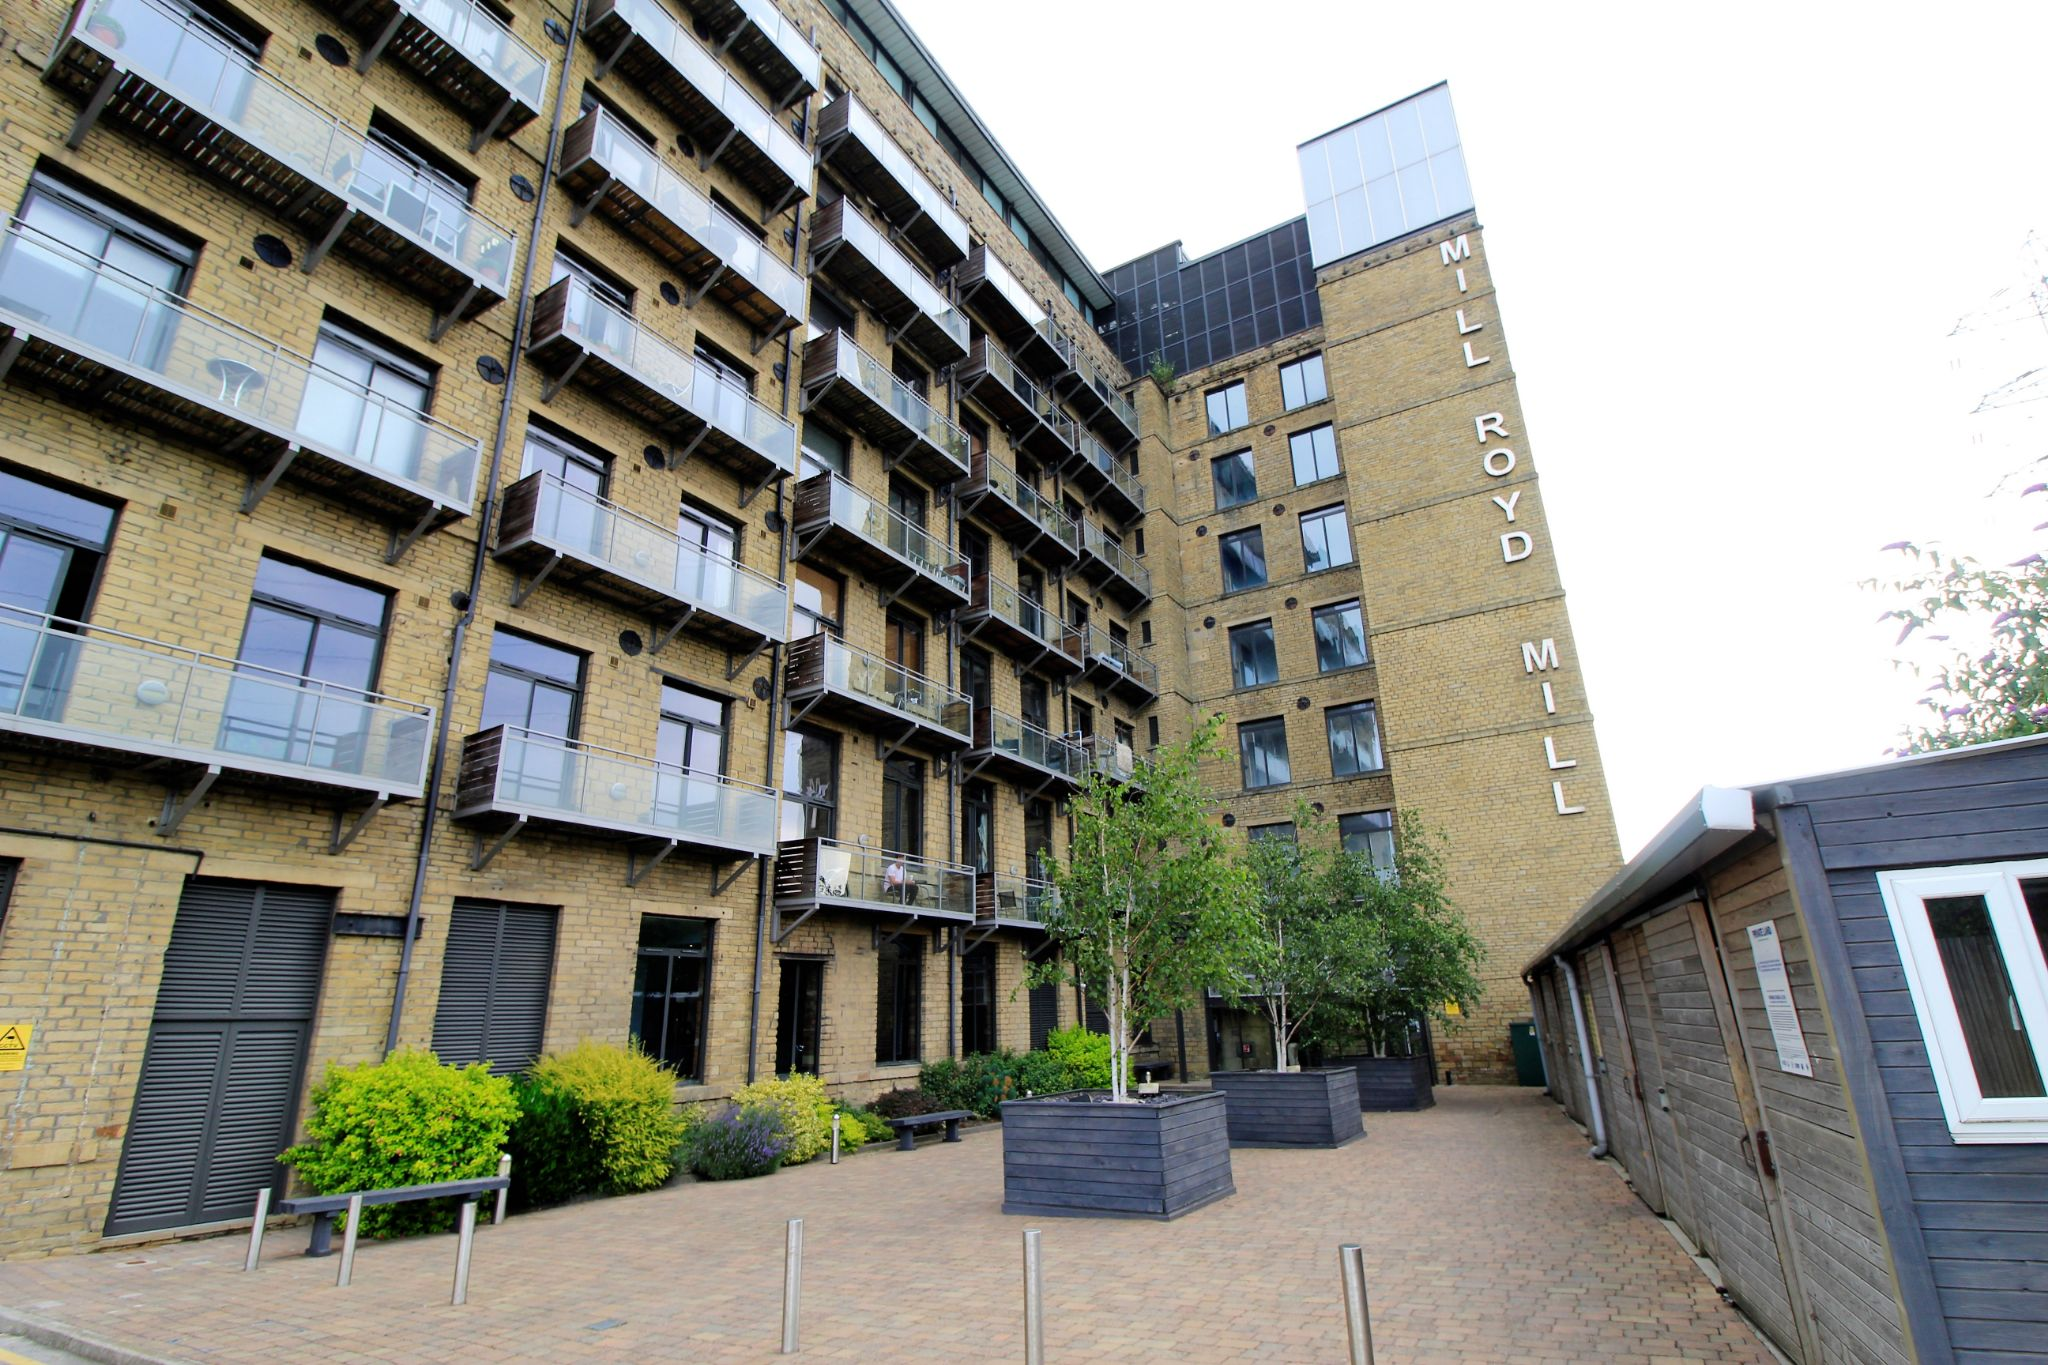 1 bedroom studio flat/apartment For Sale in Brighouse - Photograph 1